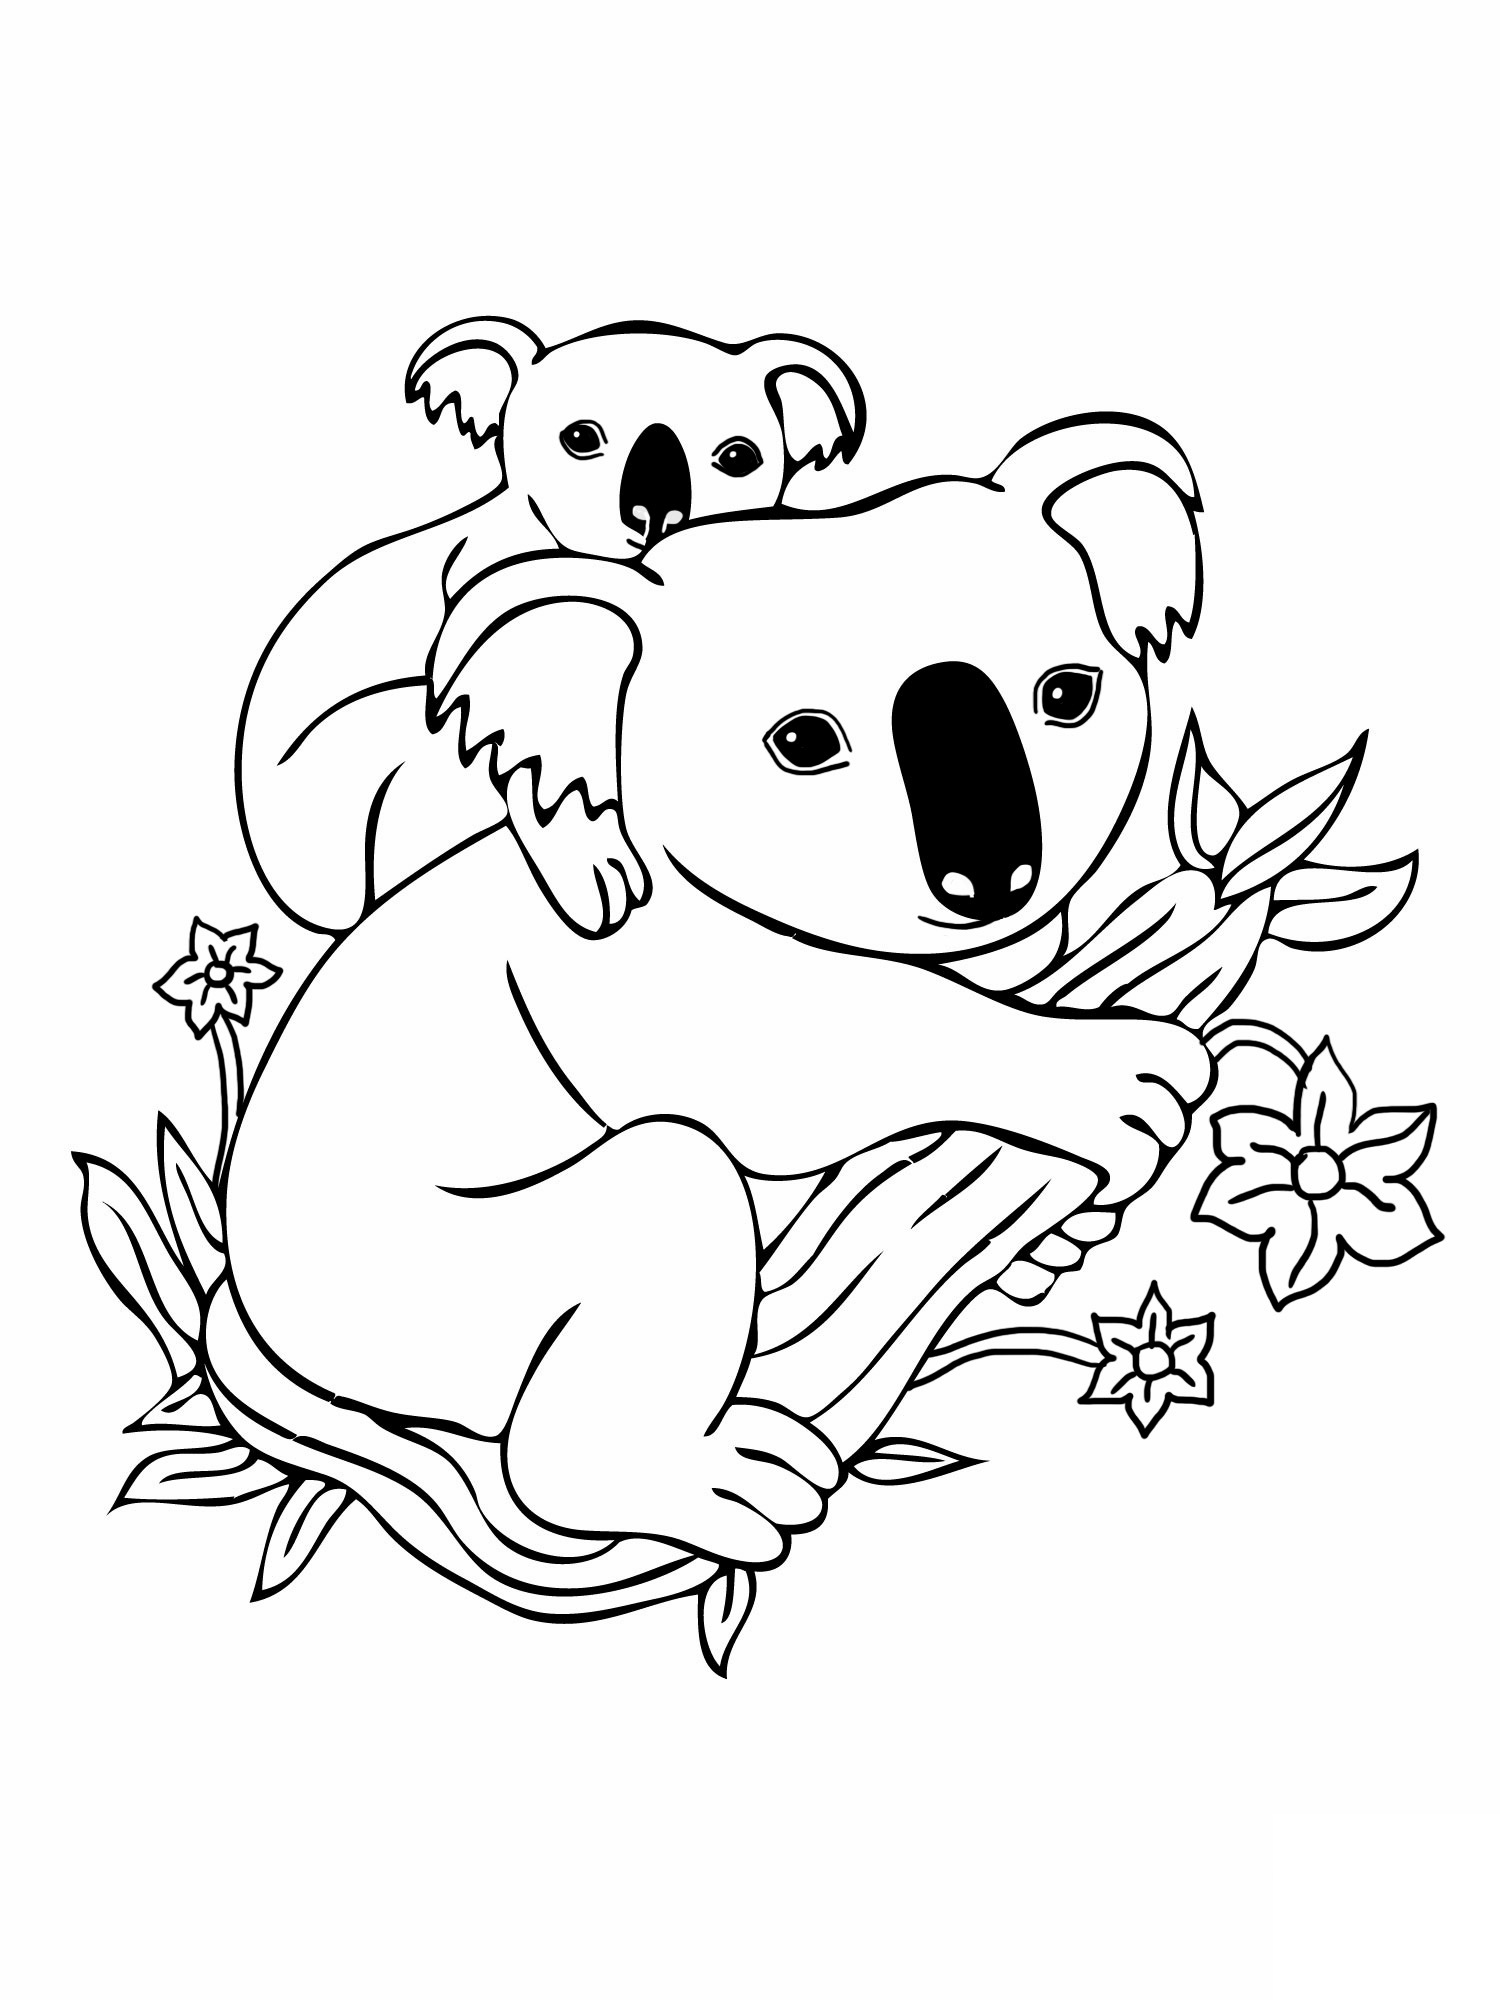 koala colouring pictures free printable koala coloring pages for kids animal place pictures colouring koala